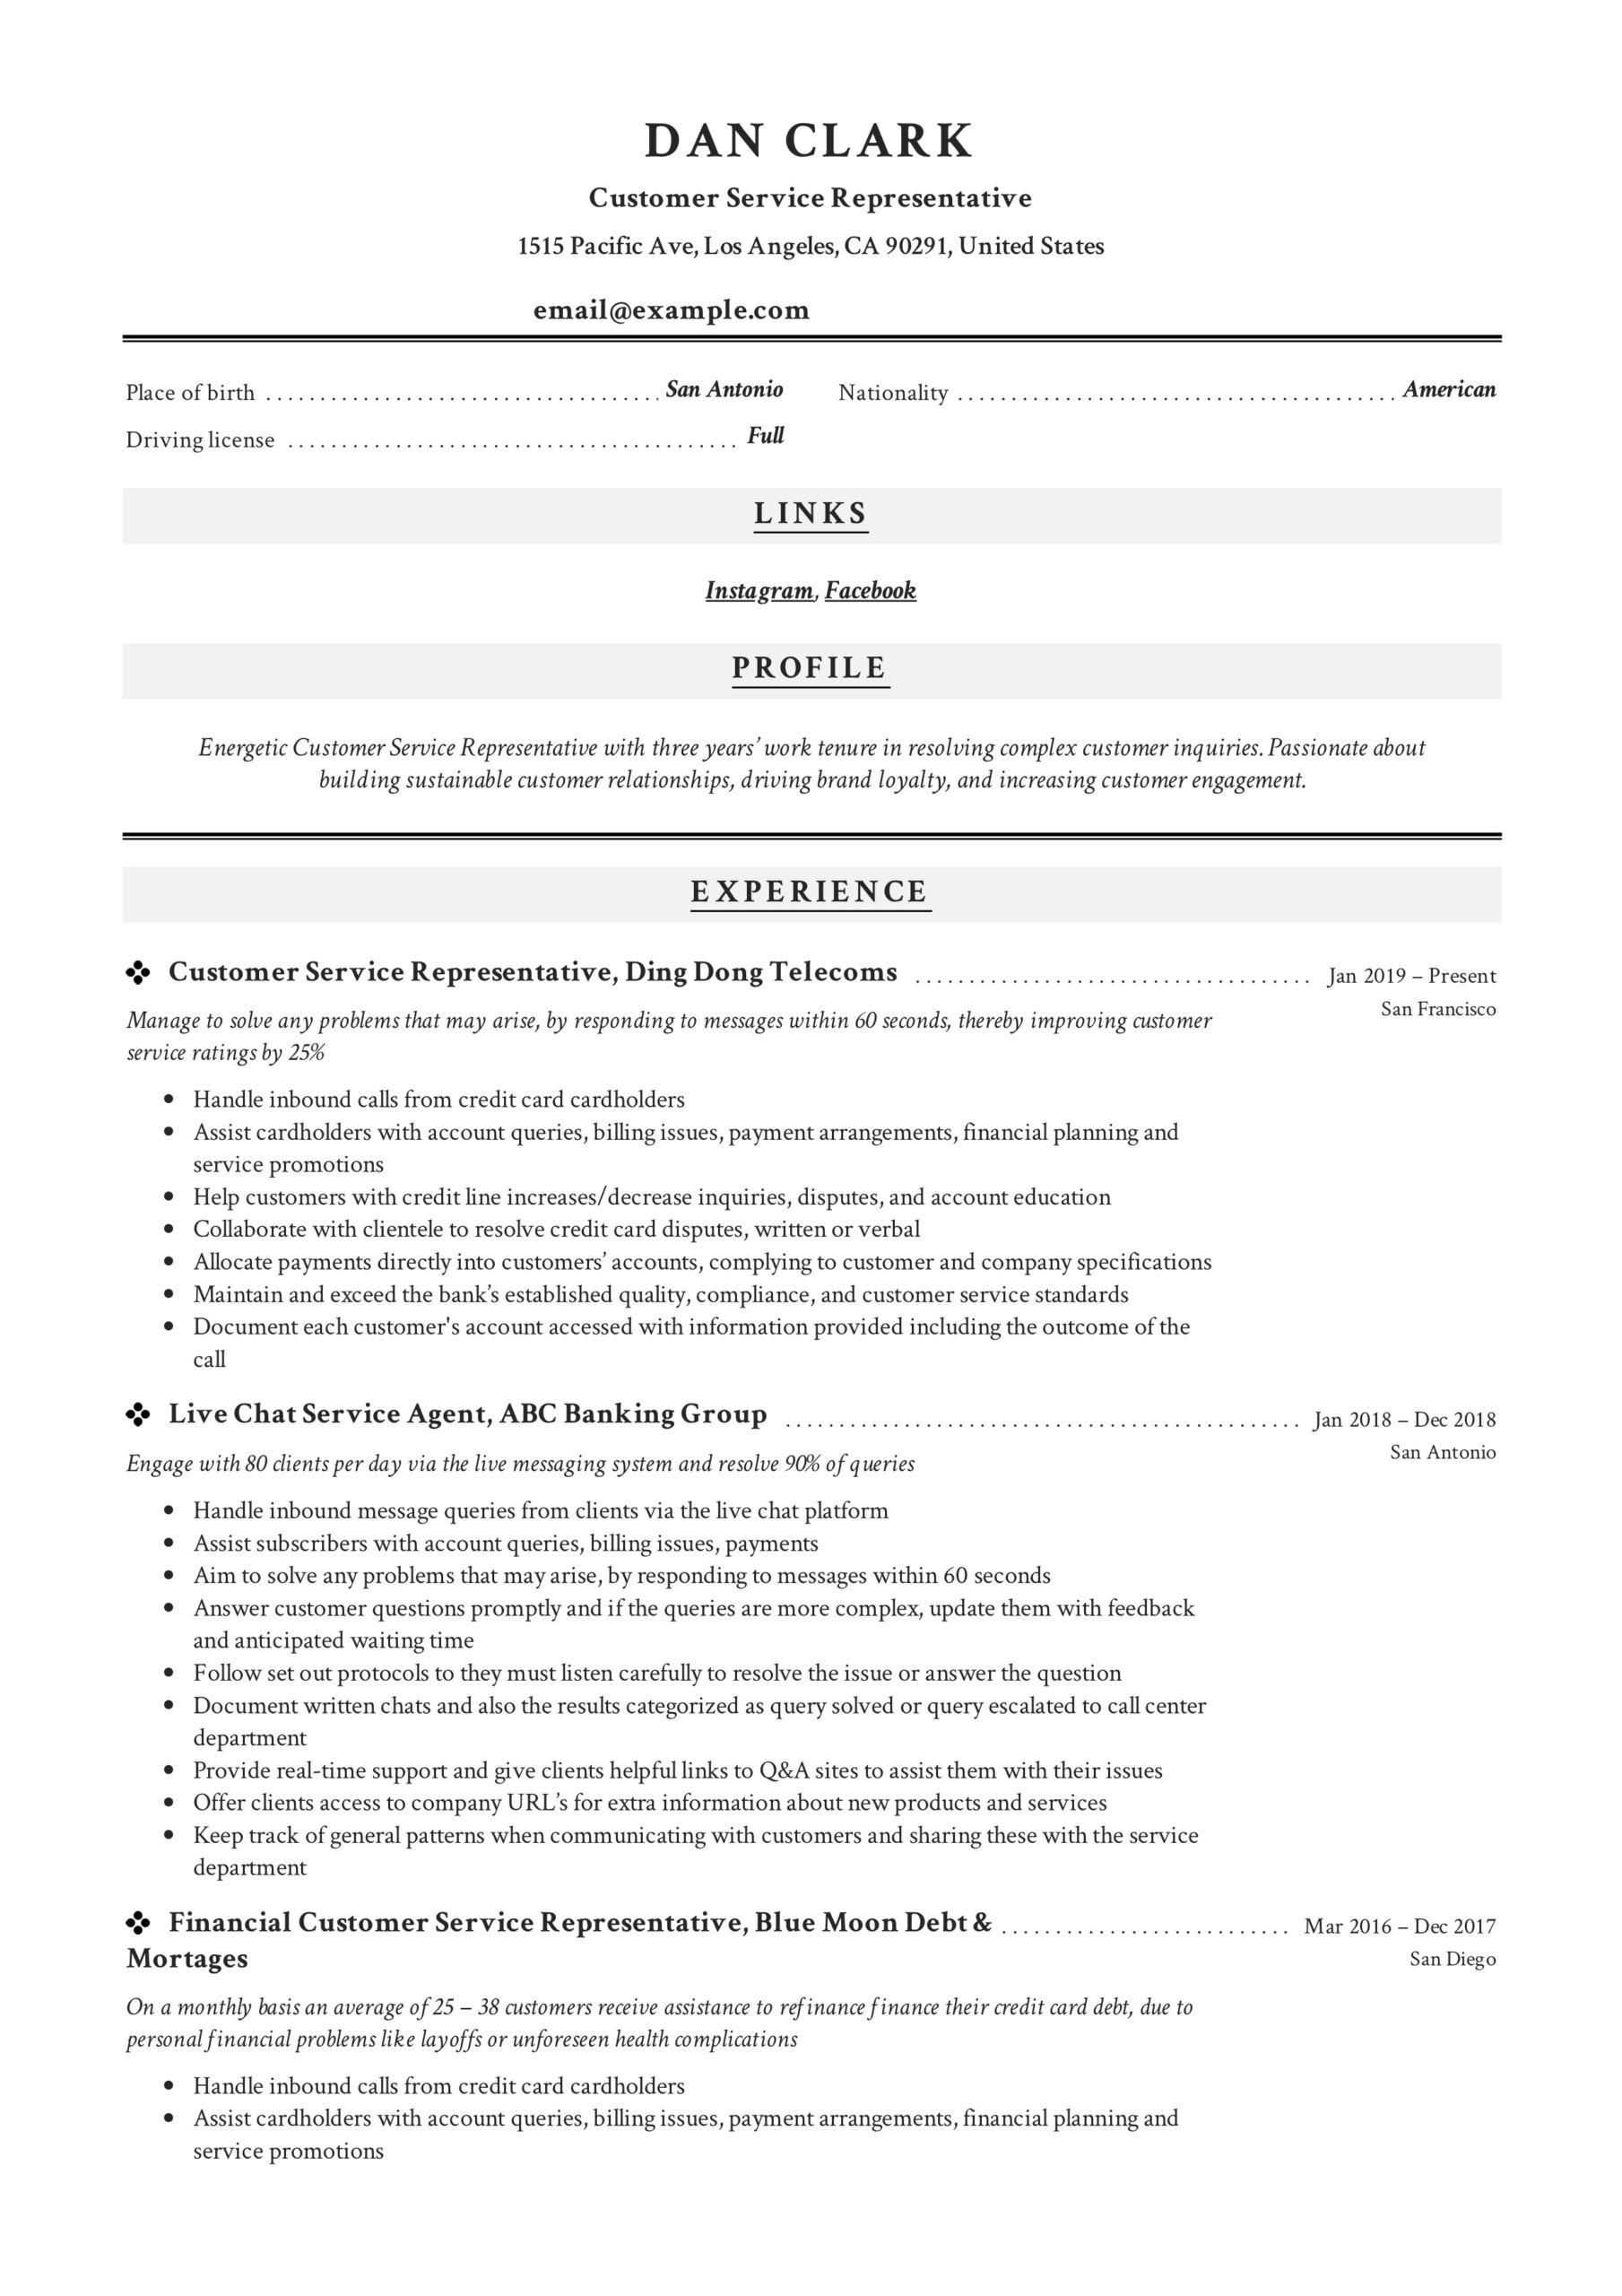 to customer service representative resume pdf samples duties for work experience examples Resume Customer Service Duties For Resume